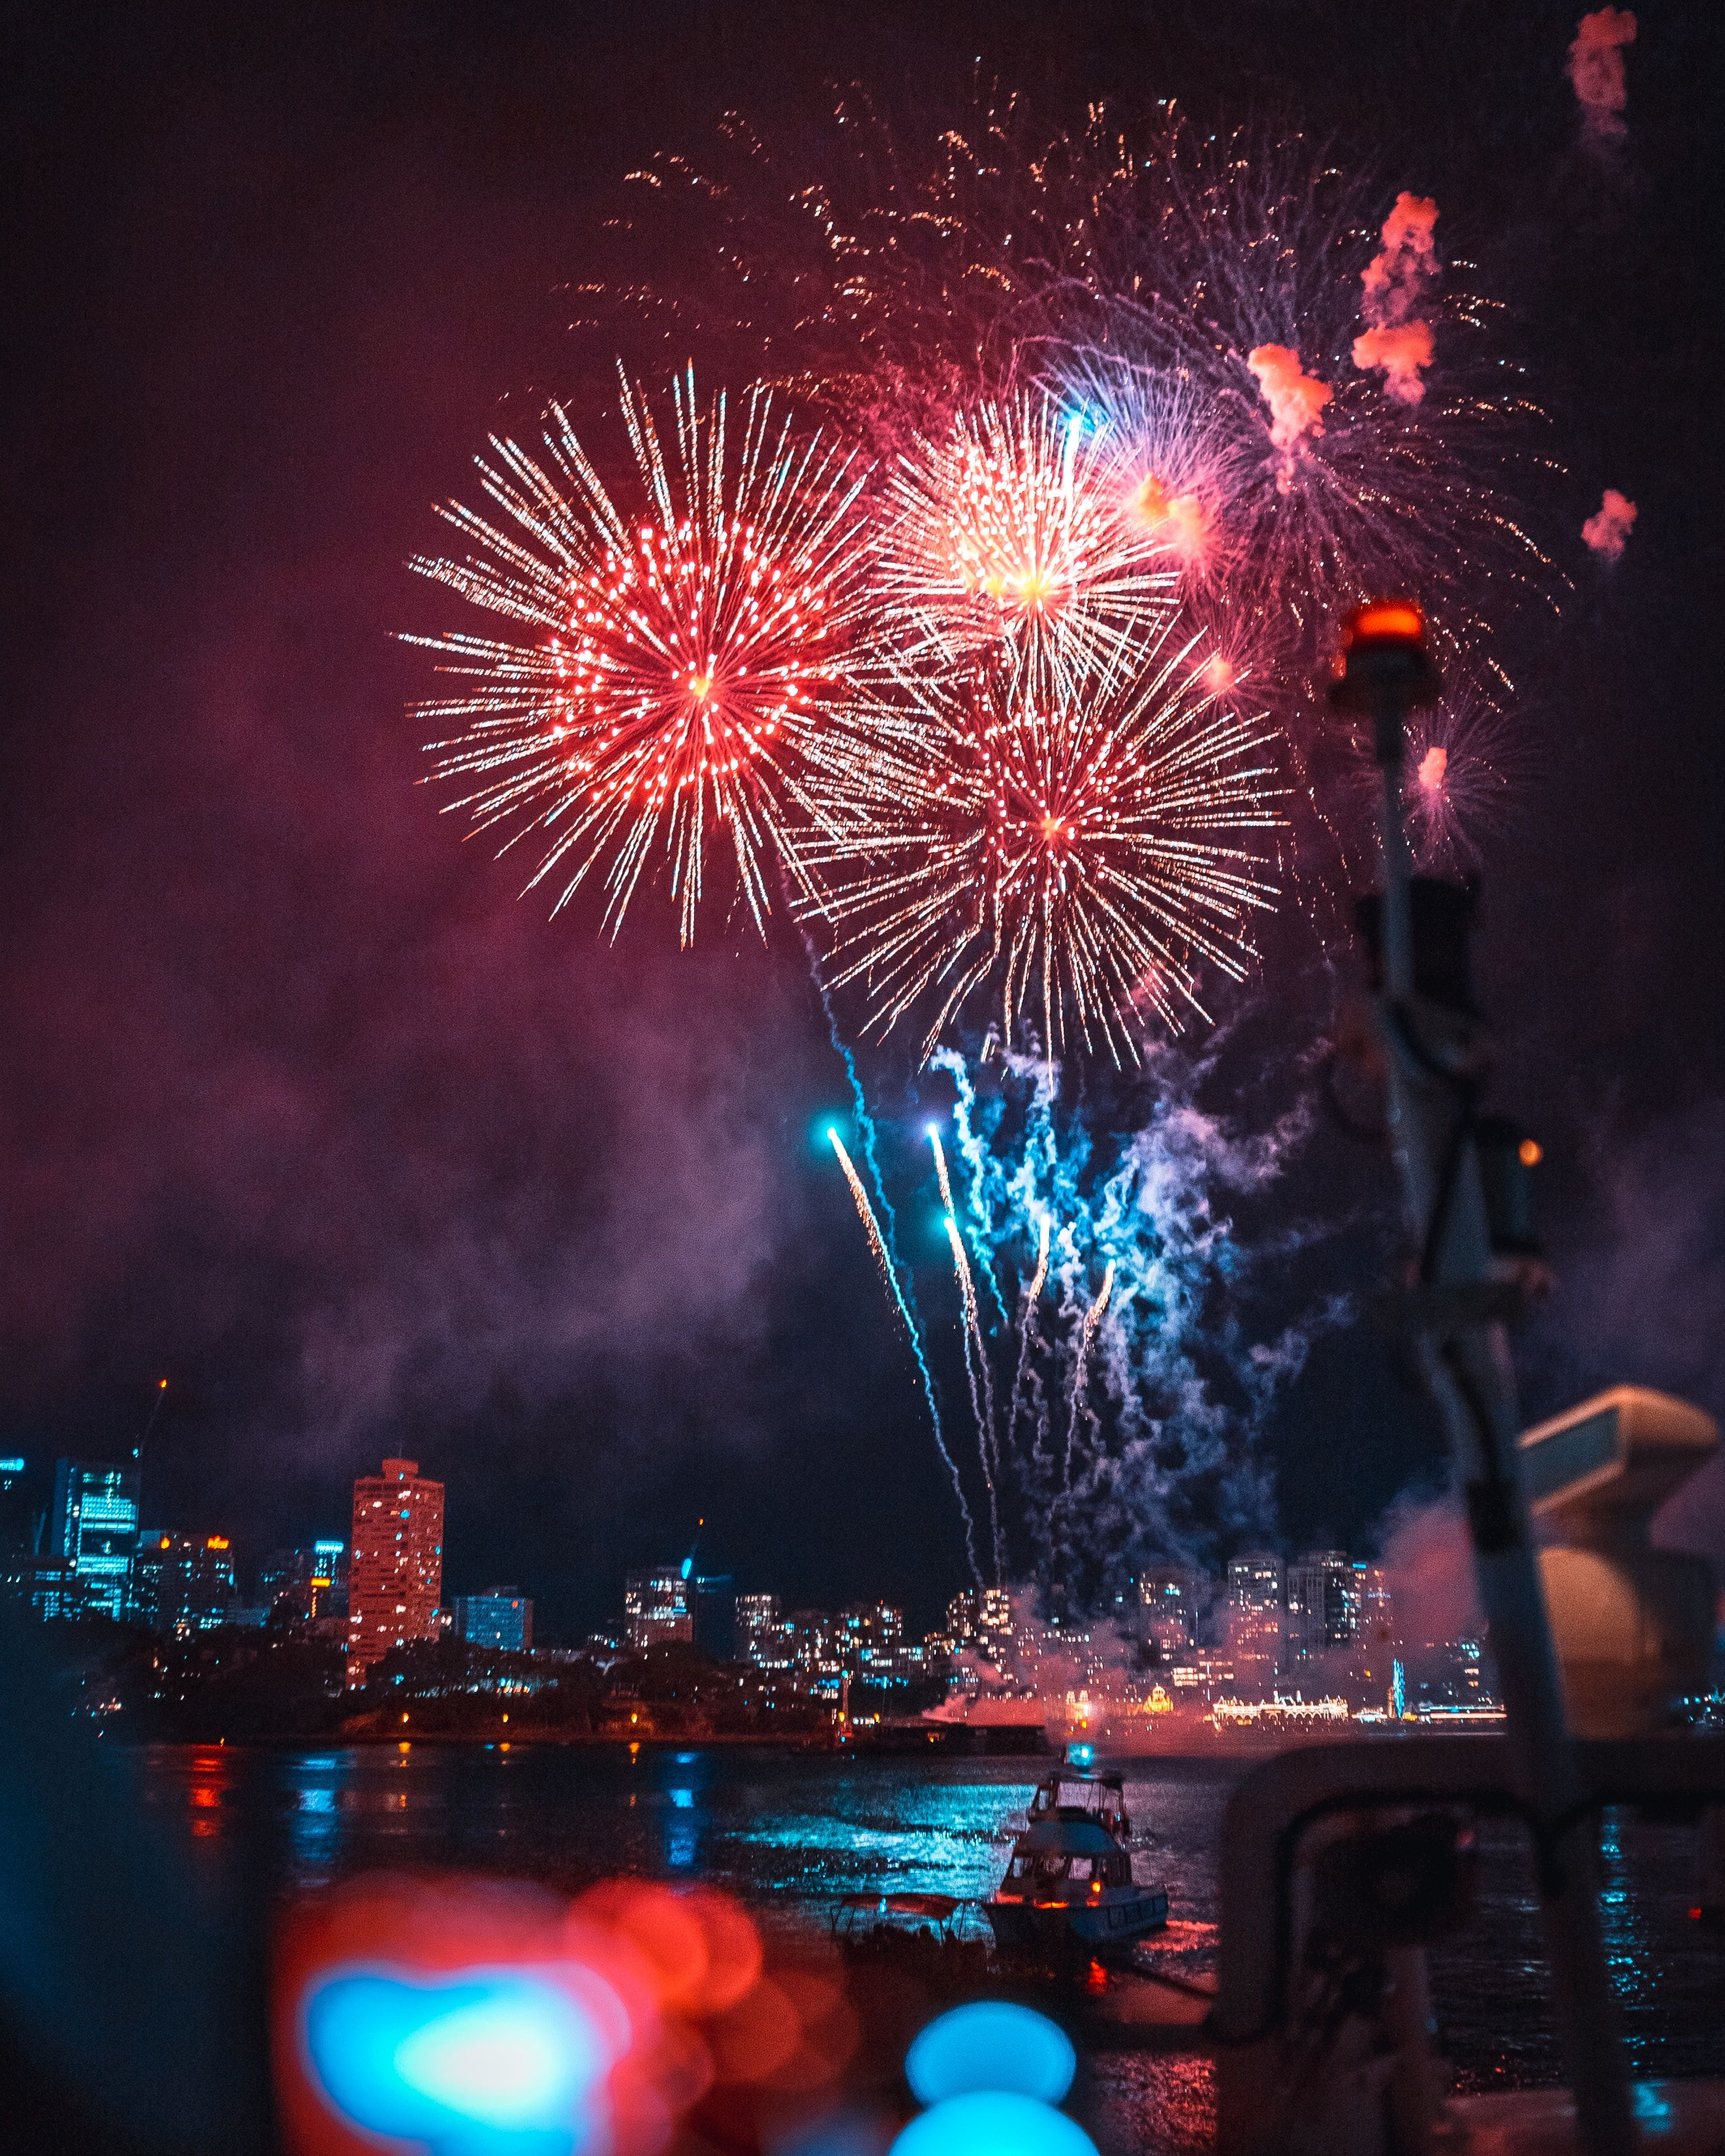 New Year's Eve 2020 is just around the corner, and while